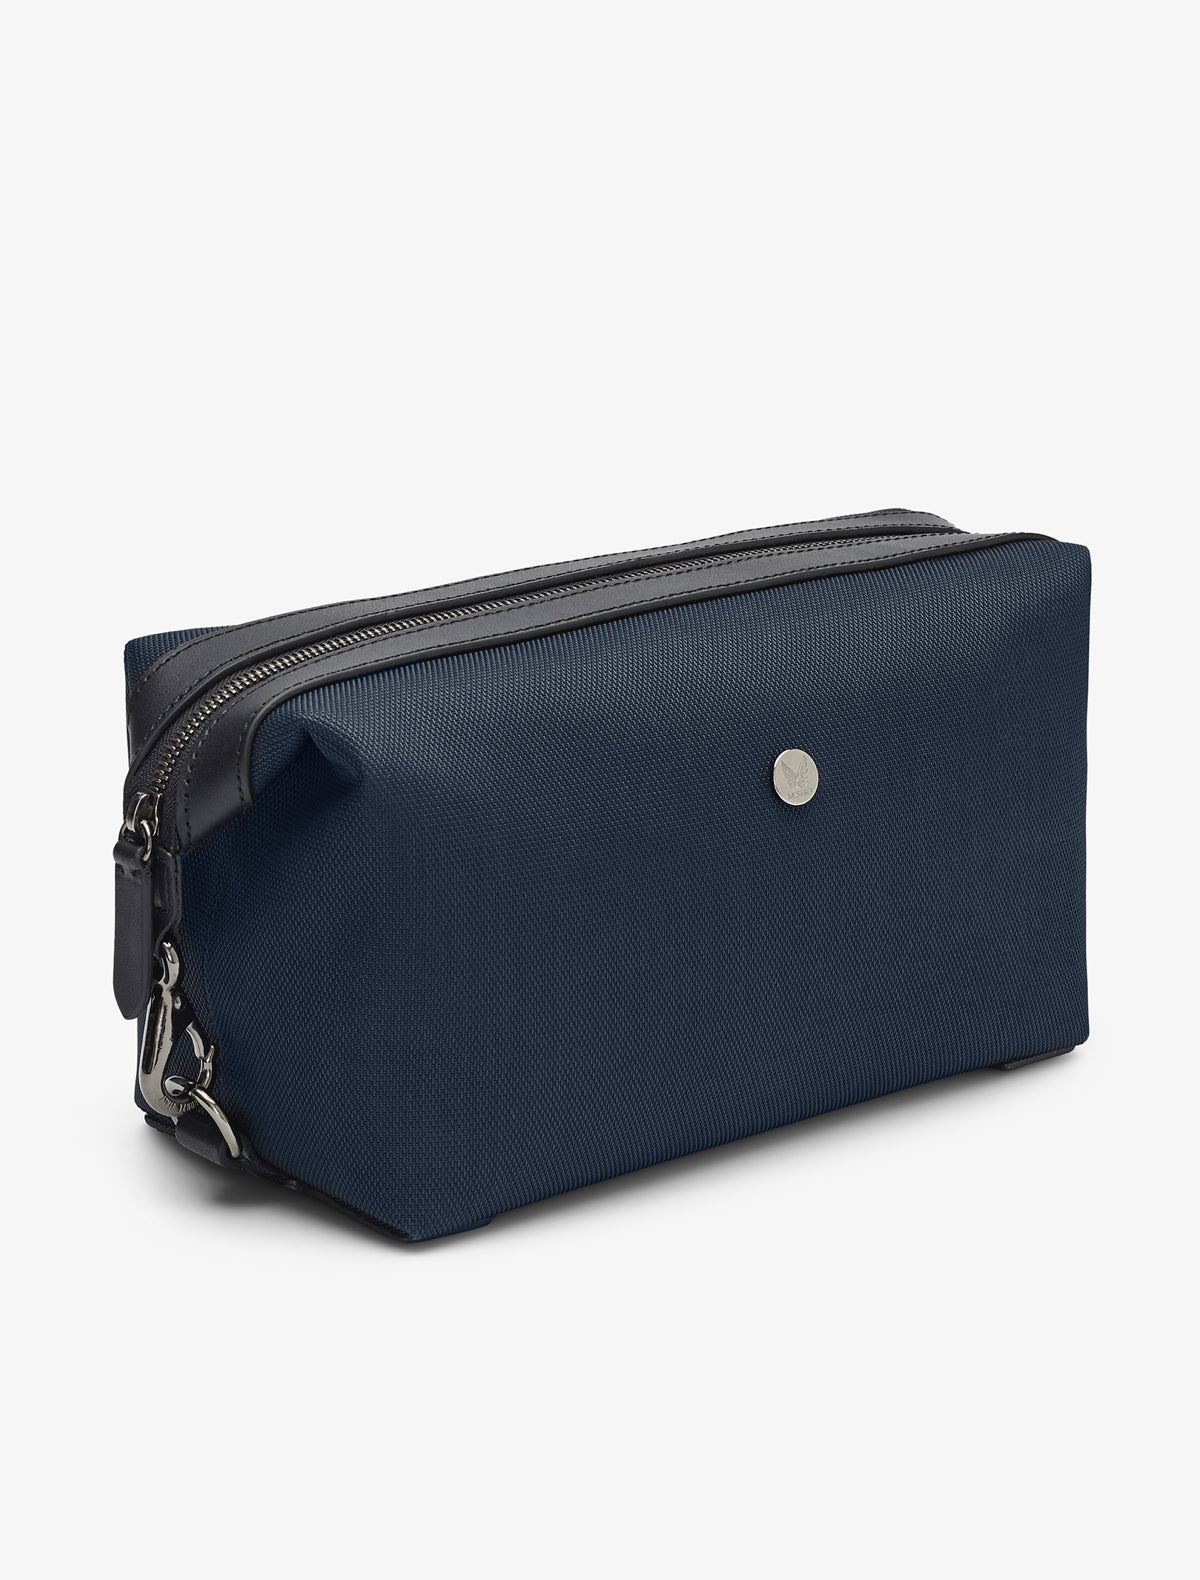 M/S Washbag – Deep blue/Black description image